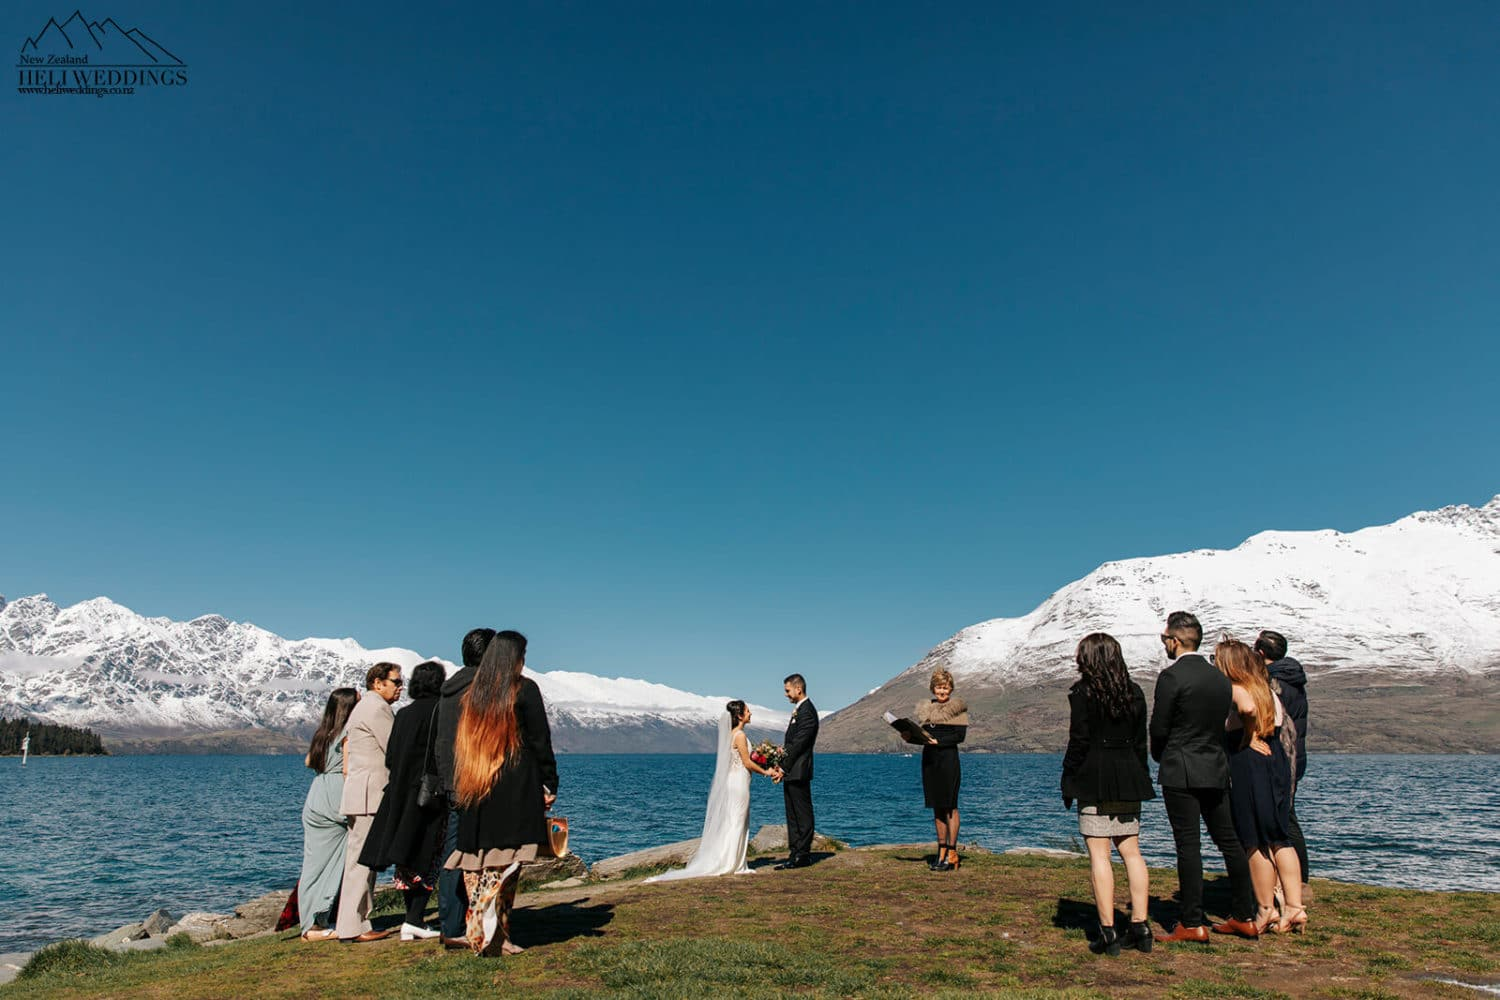 Wedding ceremony by the lake in Queenstown